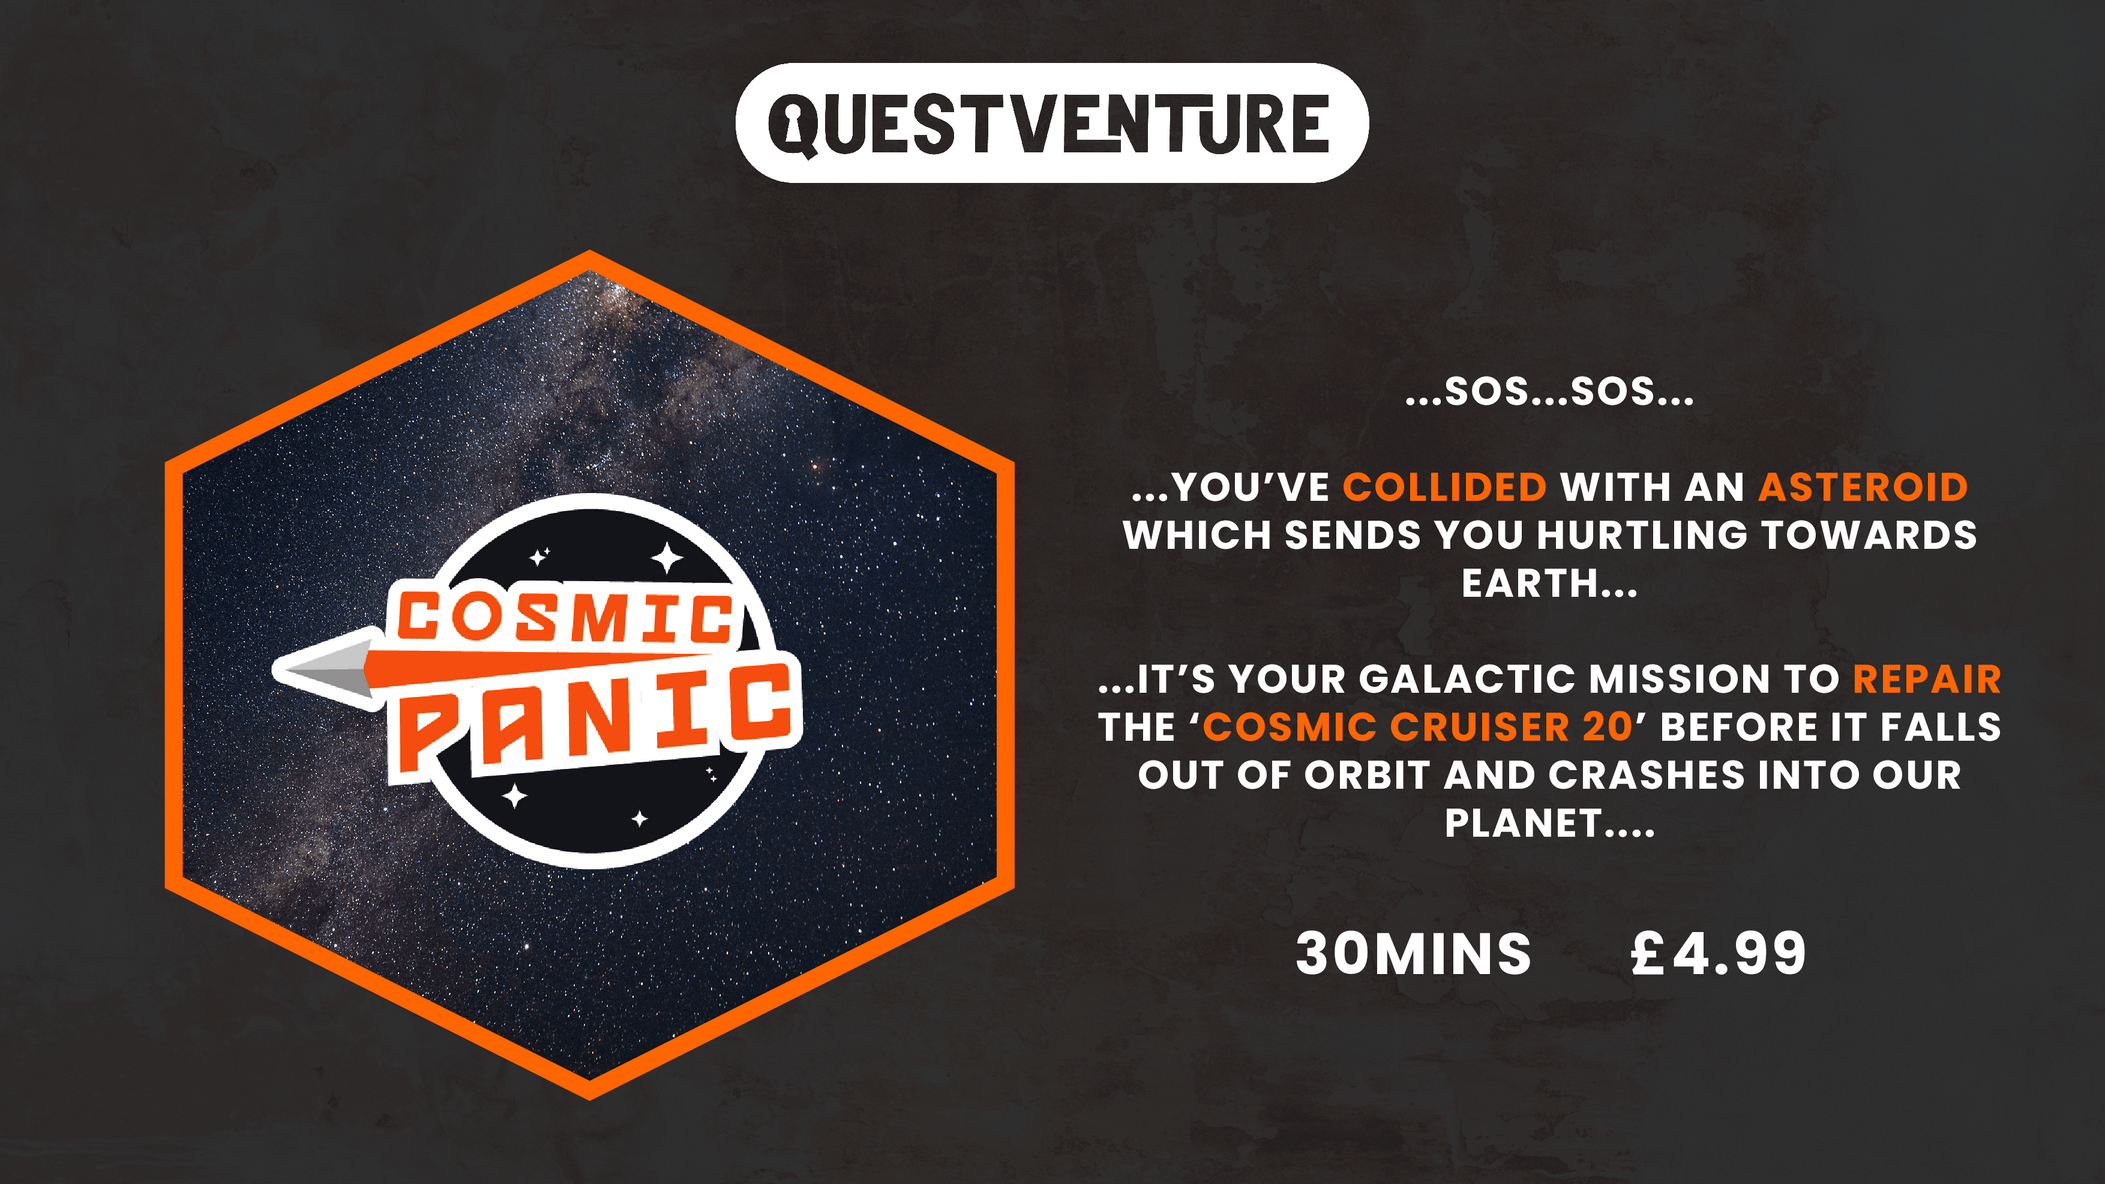 Questvenure Cosmic Panic